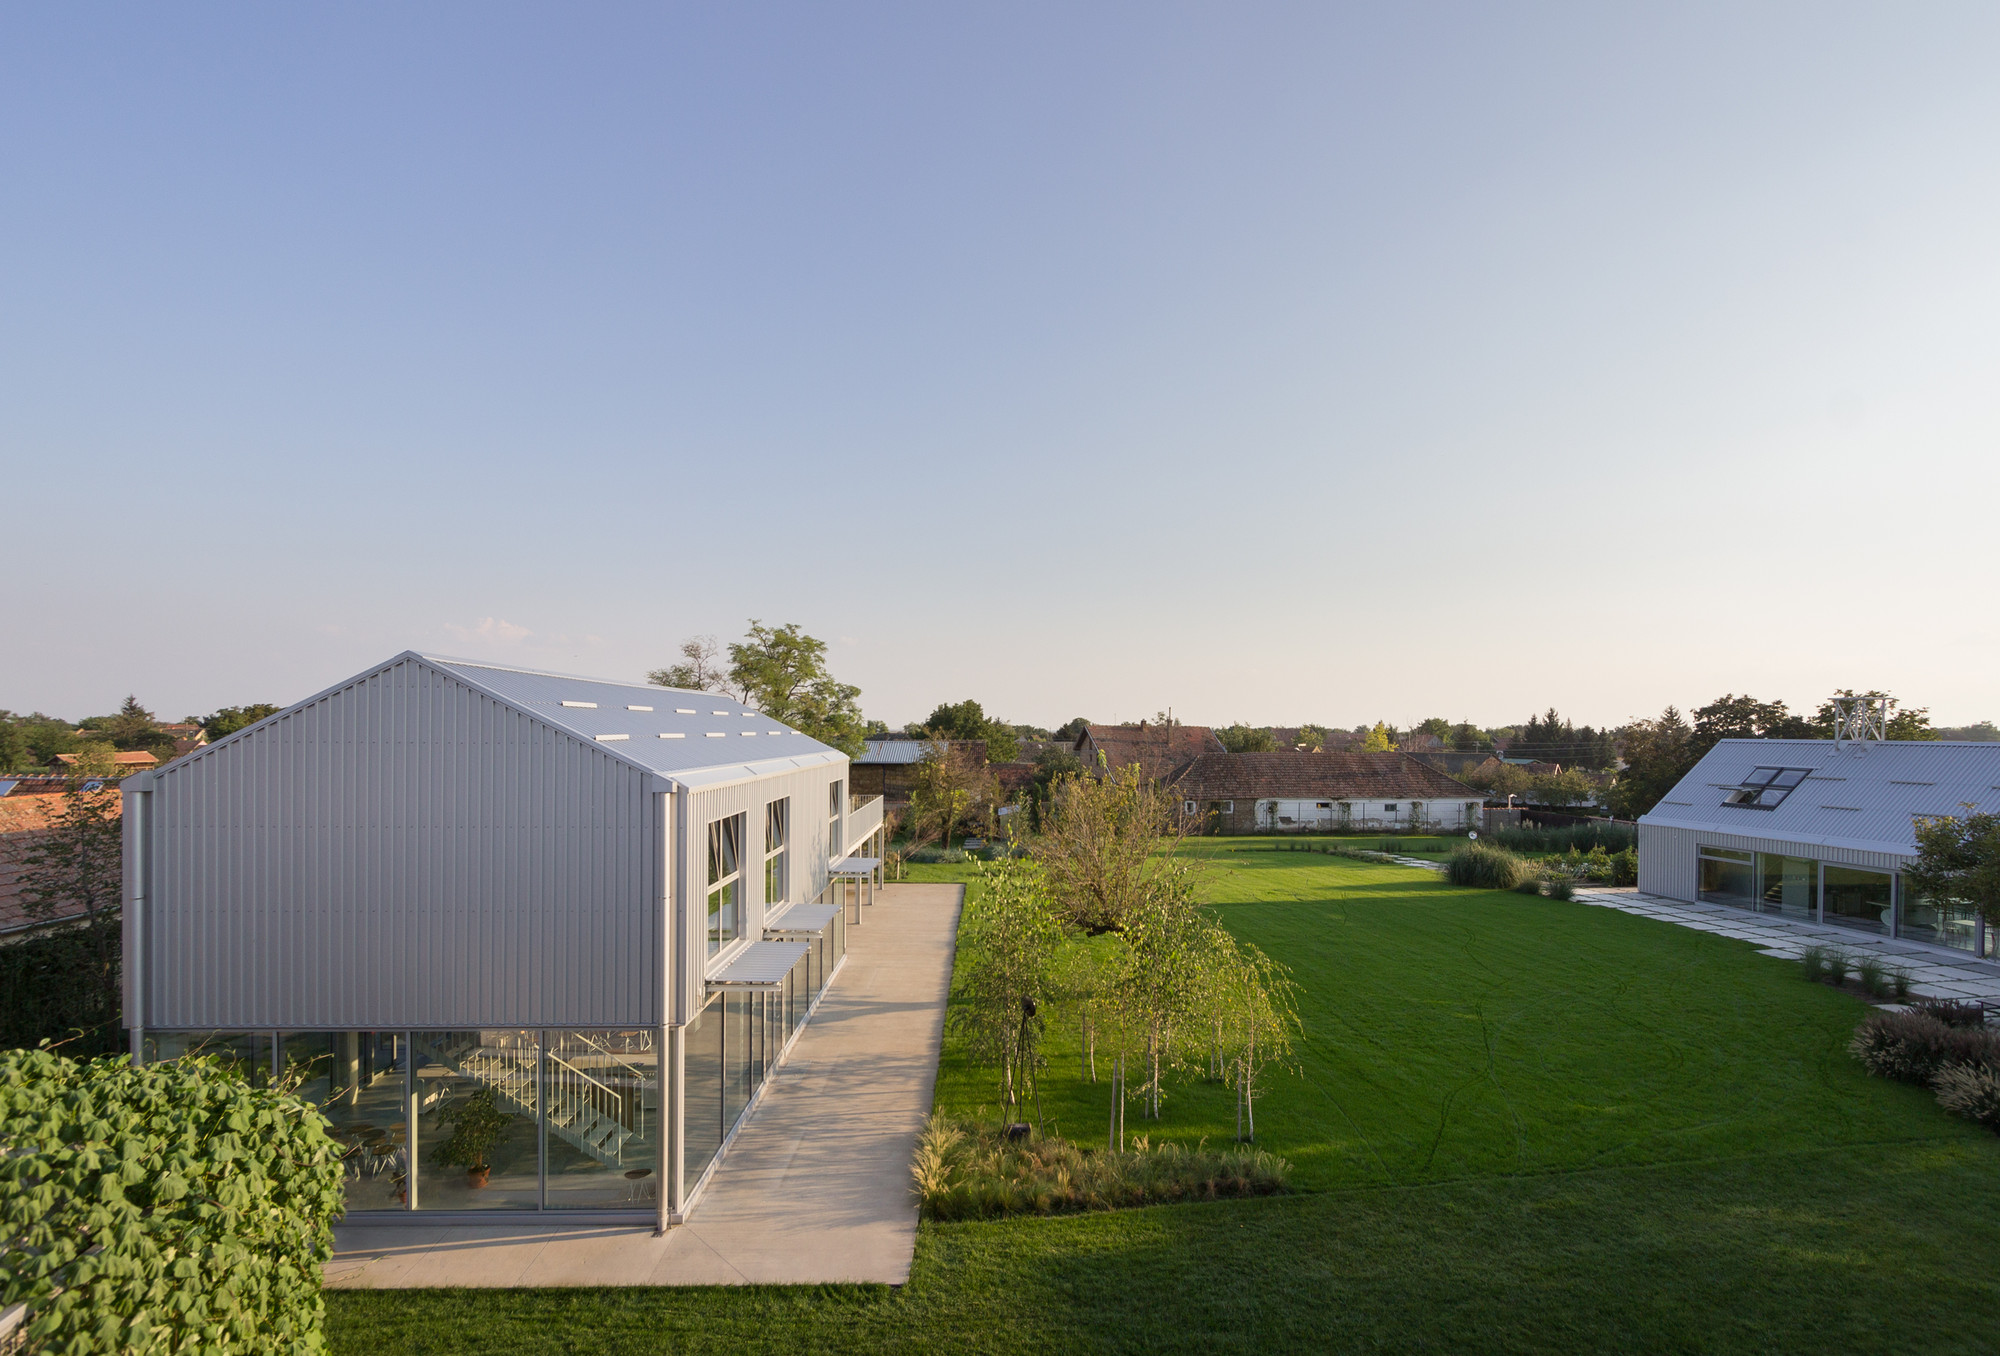 010_house_C_and_house_D